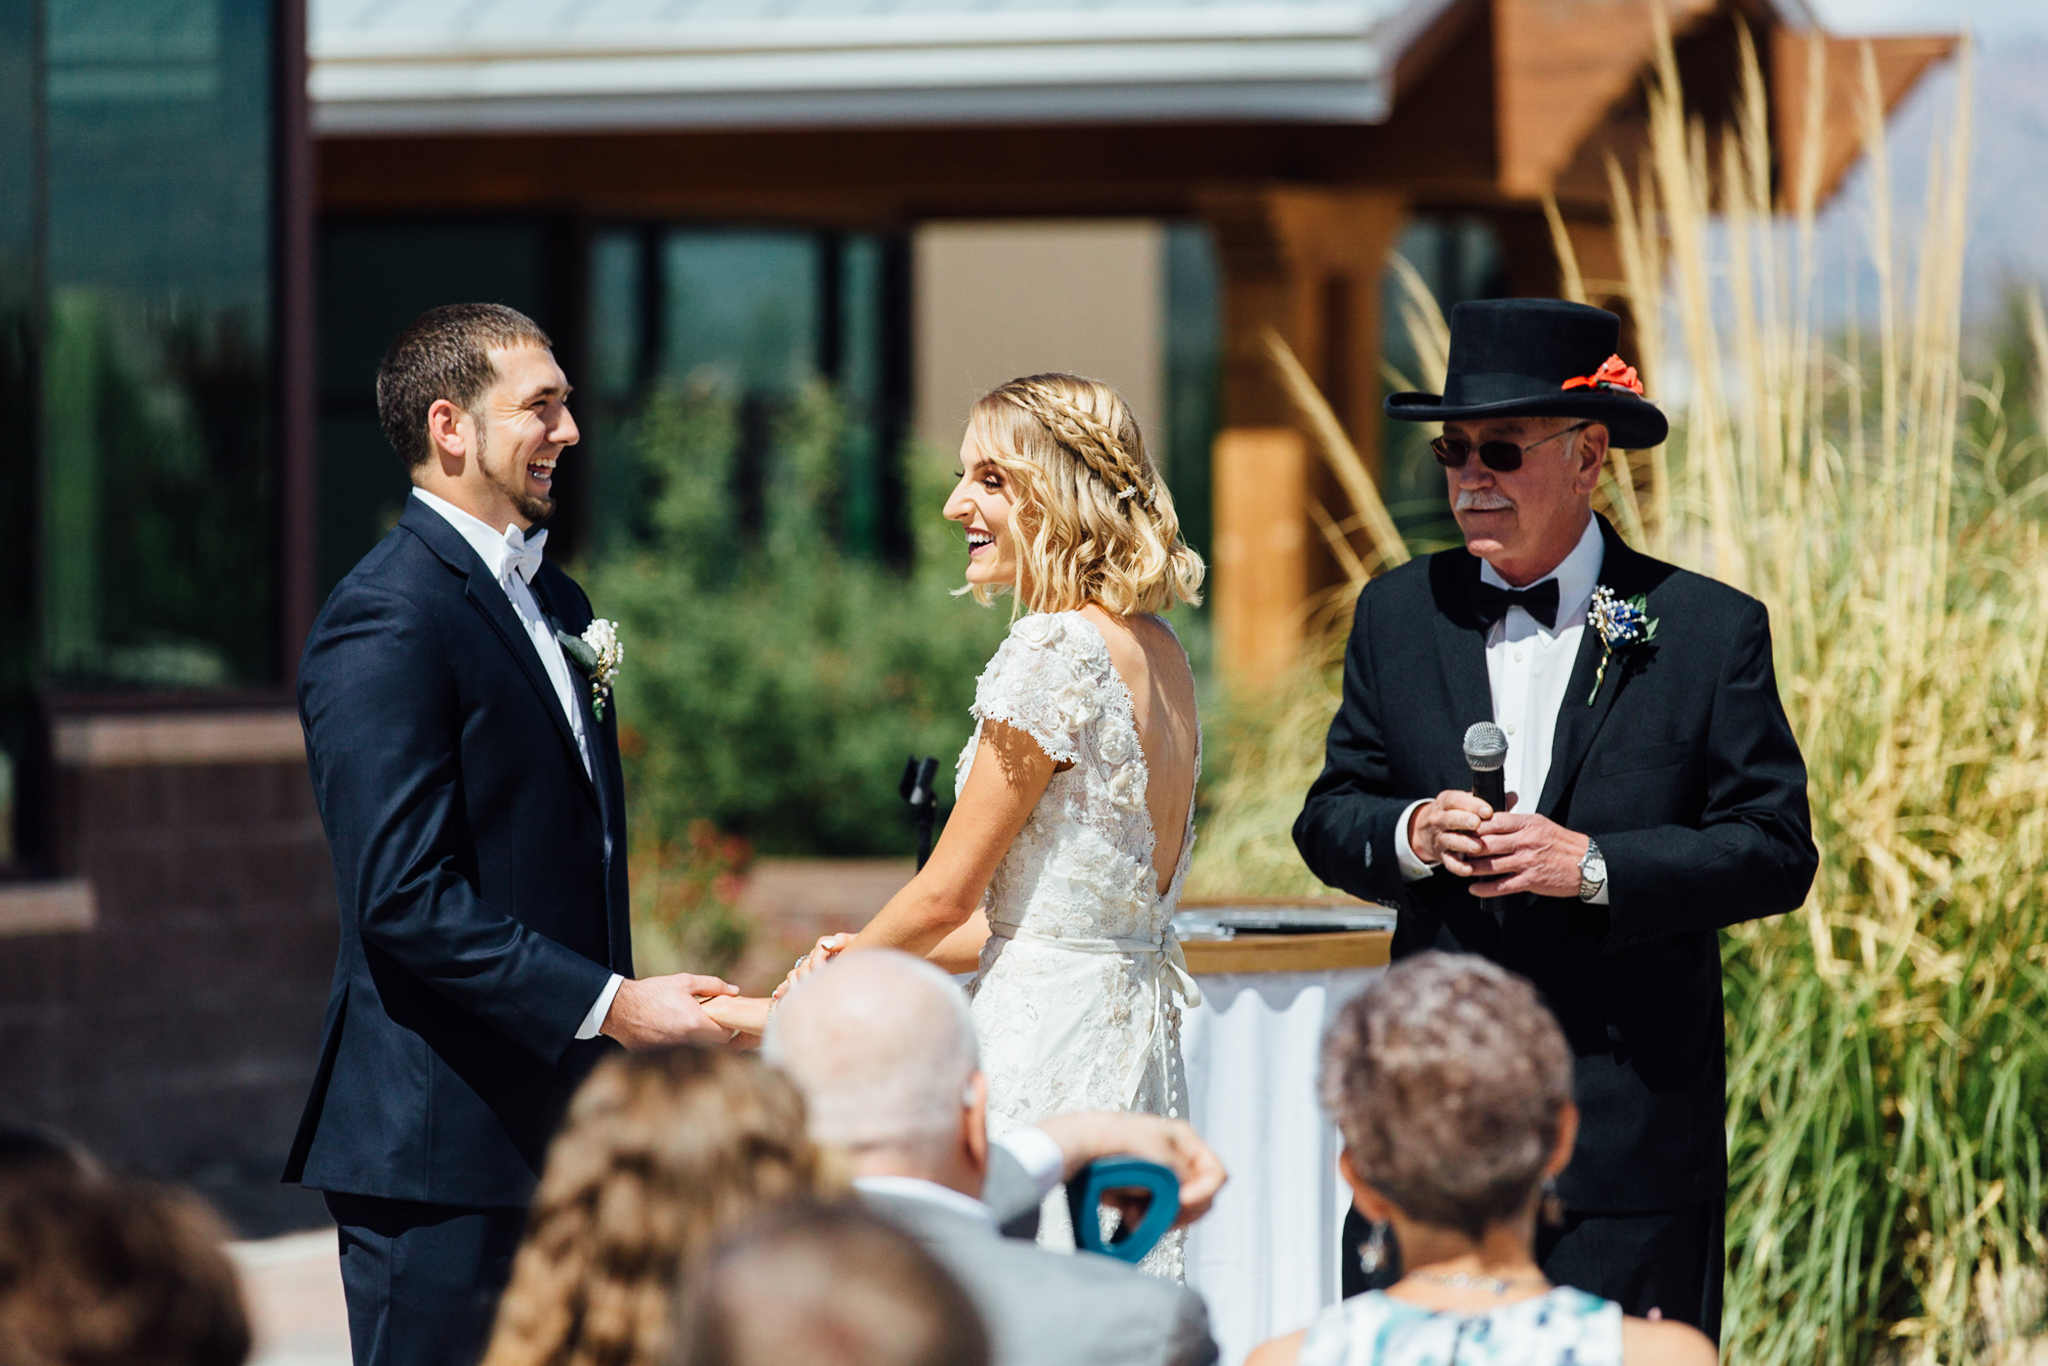 nm-farm-and-ranch-wedding-26.jpg